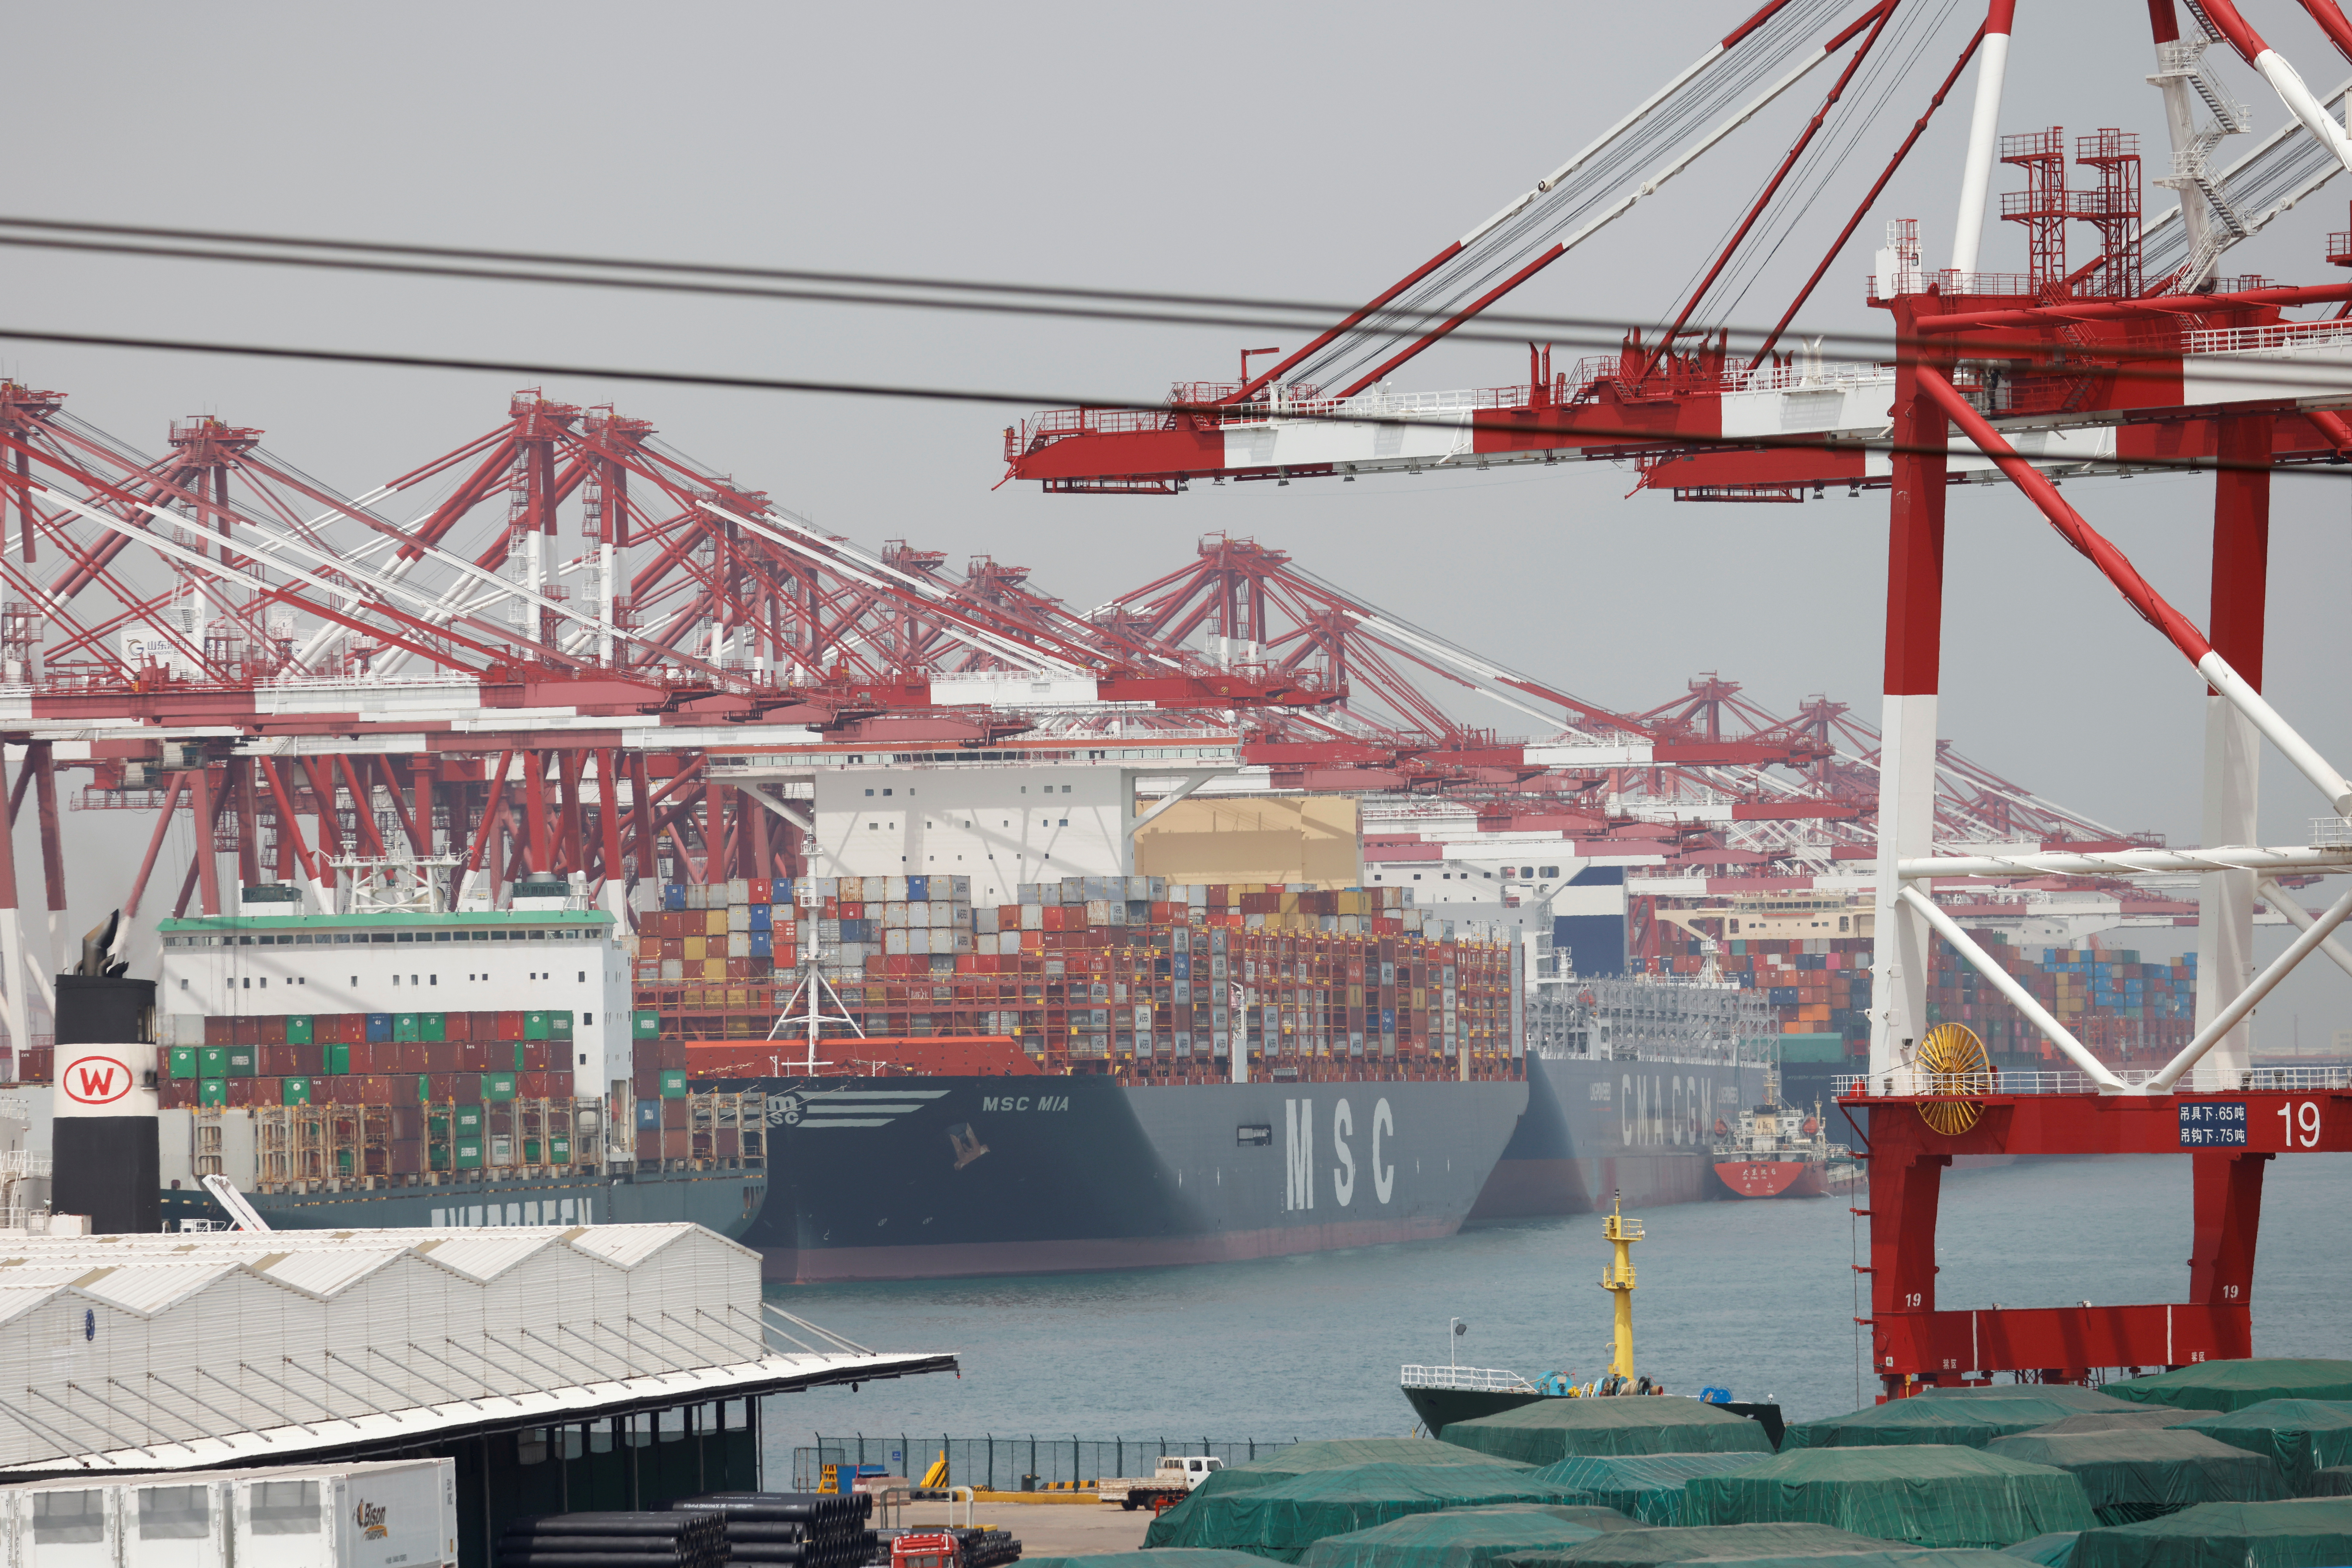 Container ships are seen at Qingdao port in Shandong province, China,  April 28, 2021. REUTERS/Carlos Garcia Rawlins/File Photo